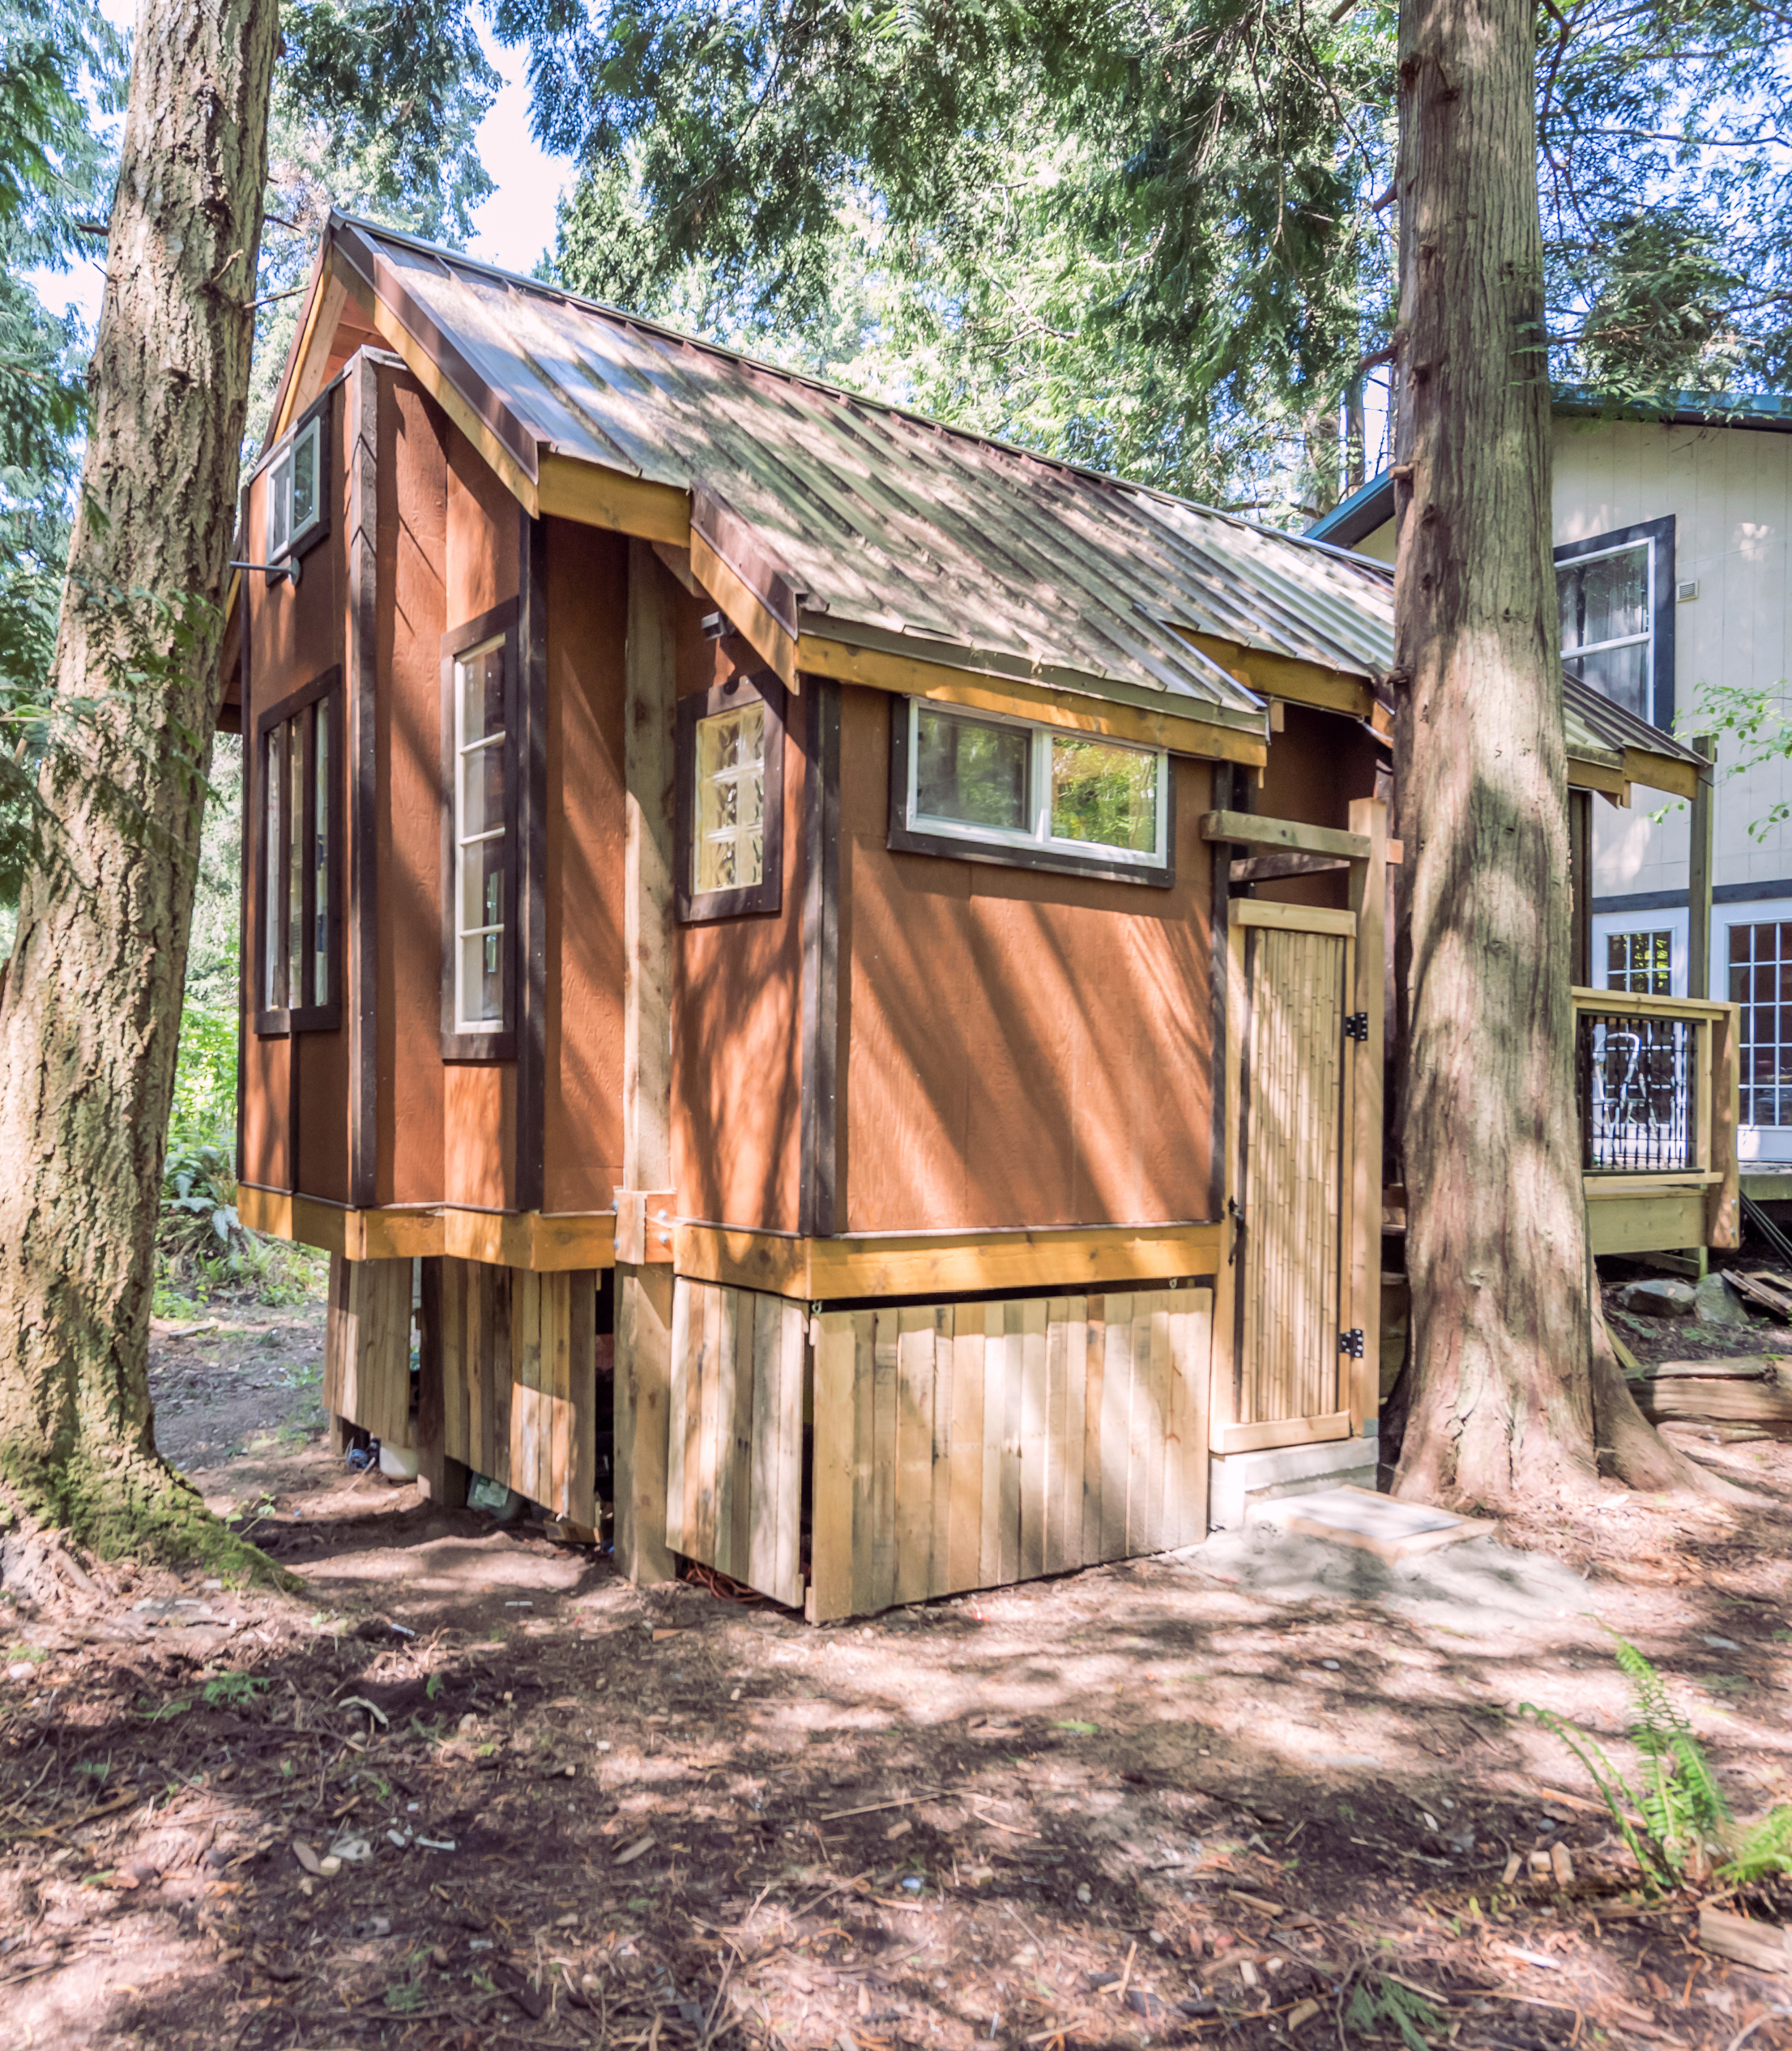 The Treehouse cottage offers the ultimate in holiday rentals